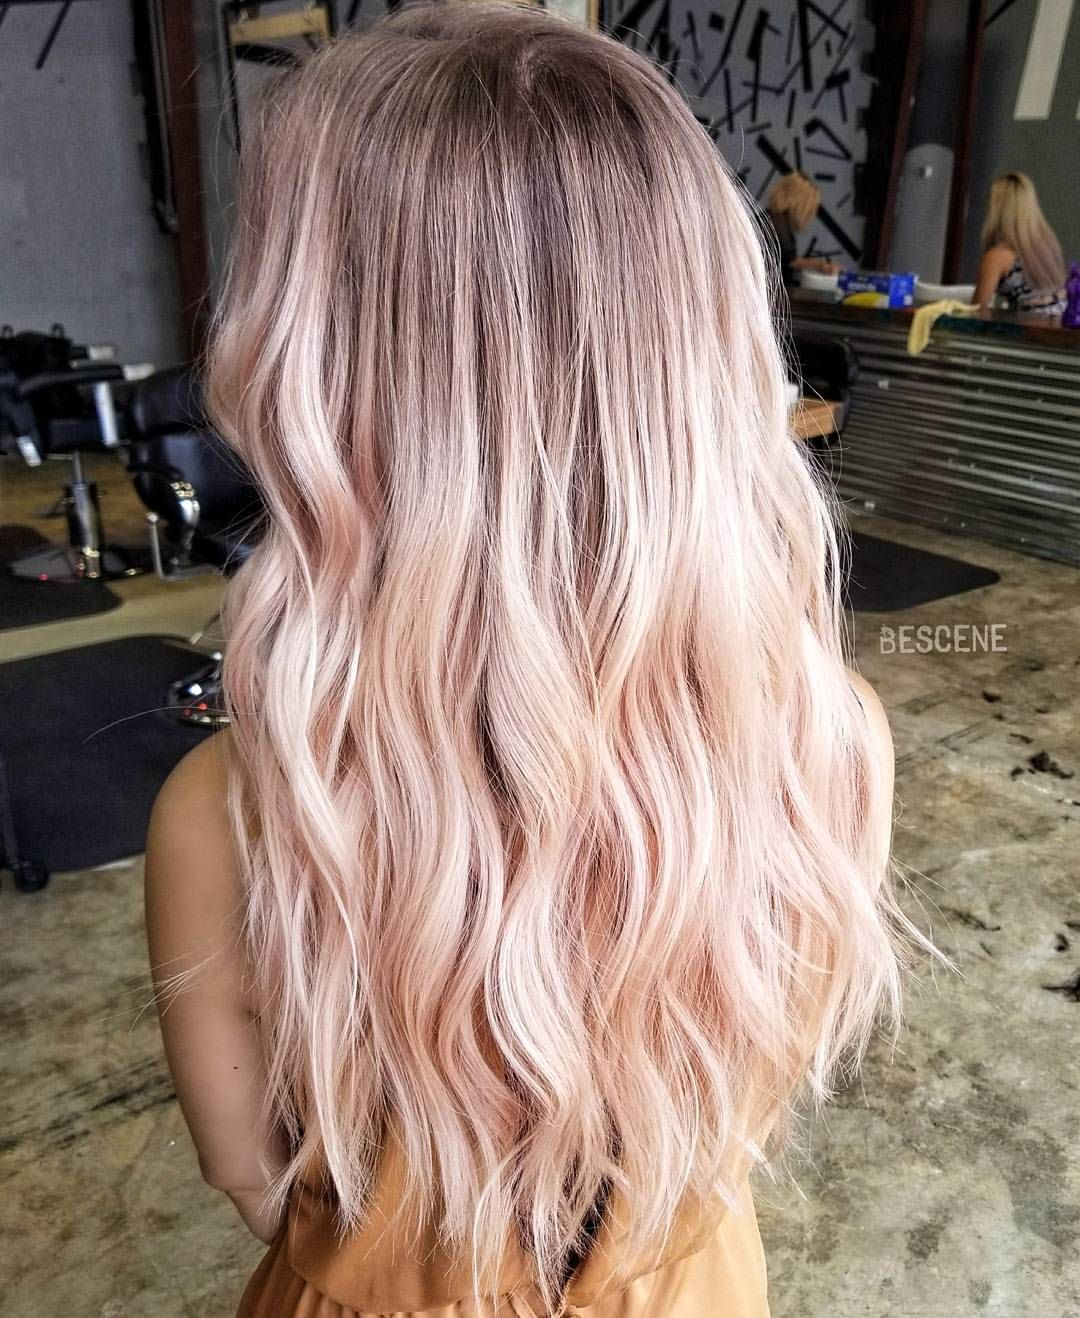 Were Crushing On This Lush Fall Rose🌹 - Behindthechair.com